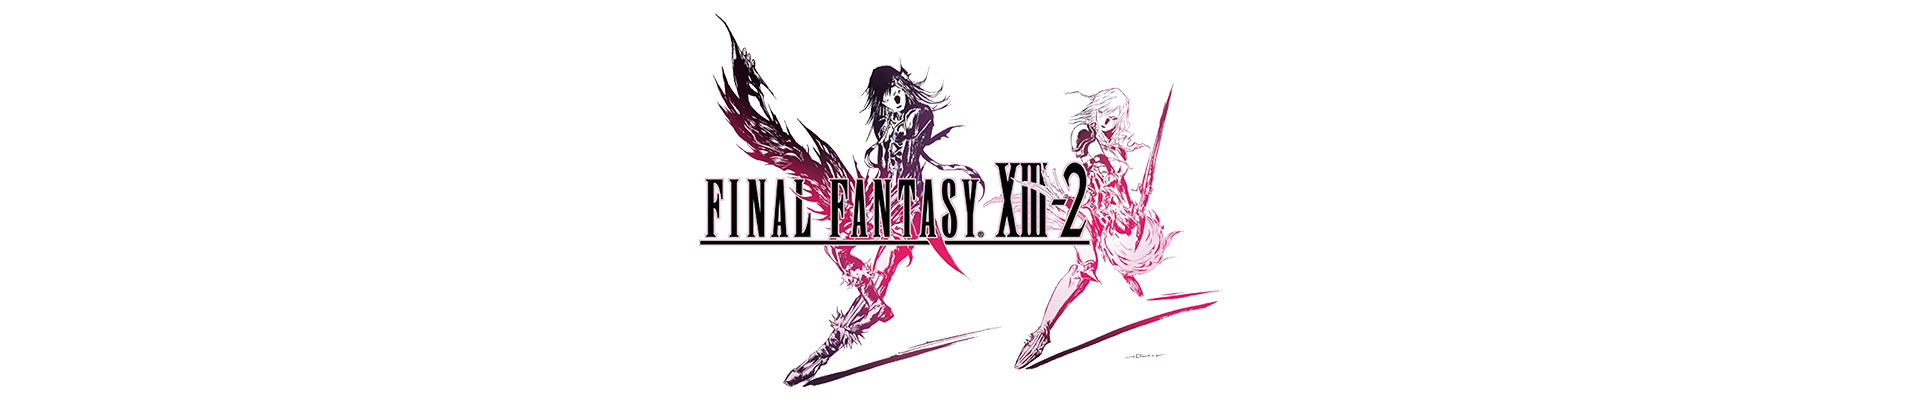 Final Fantasy XIII-2. But you're still hungry